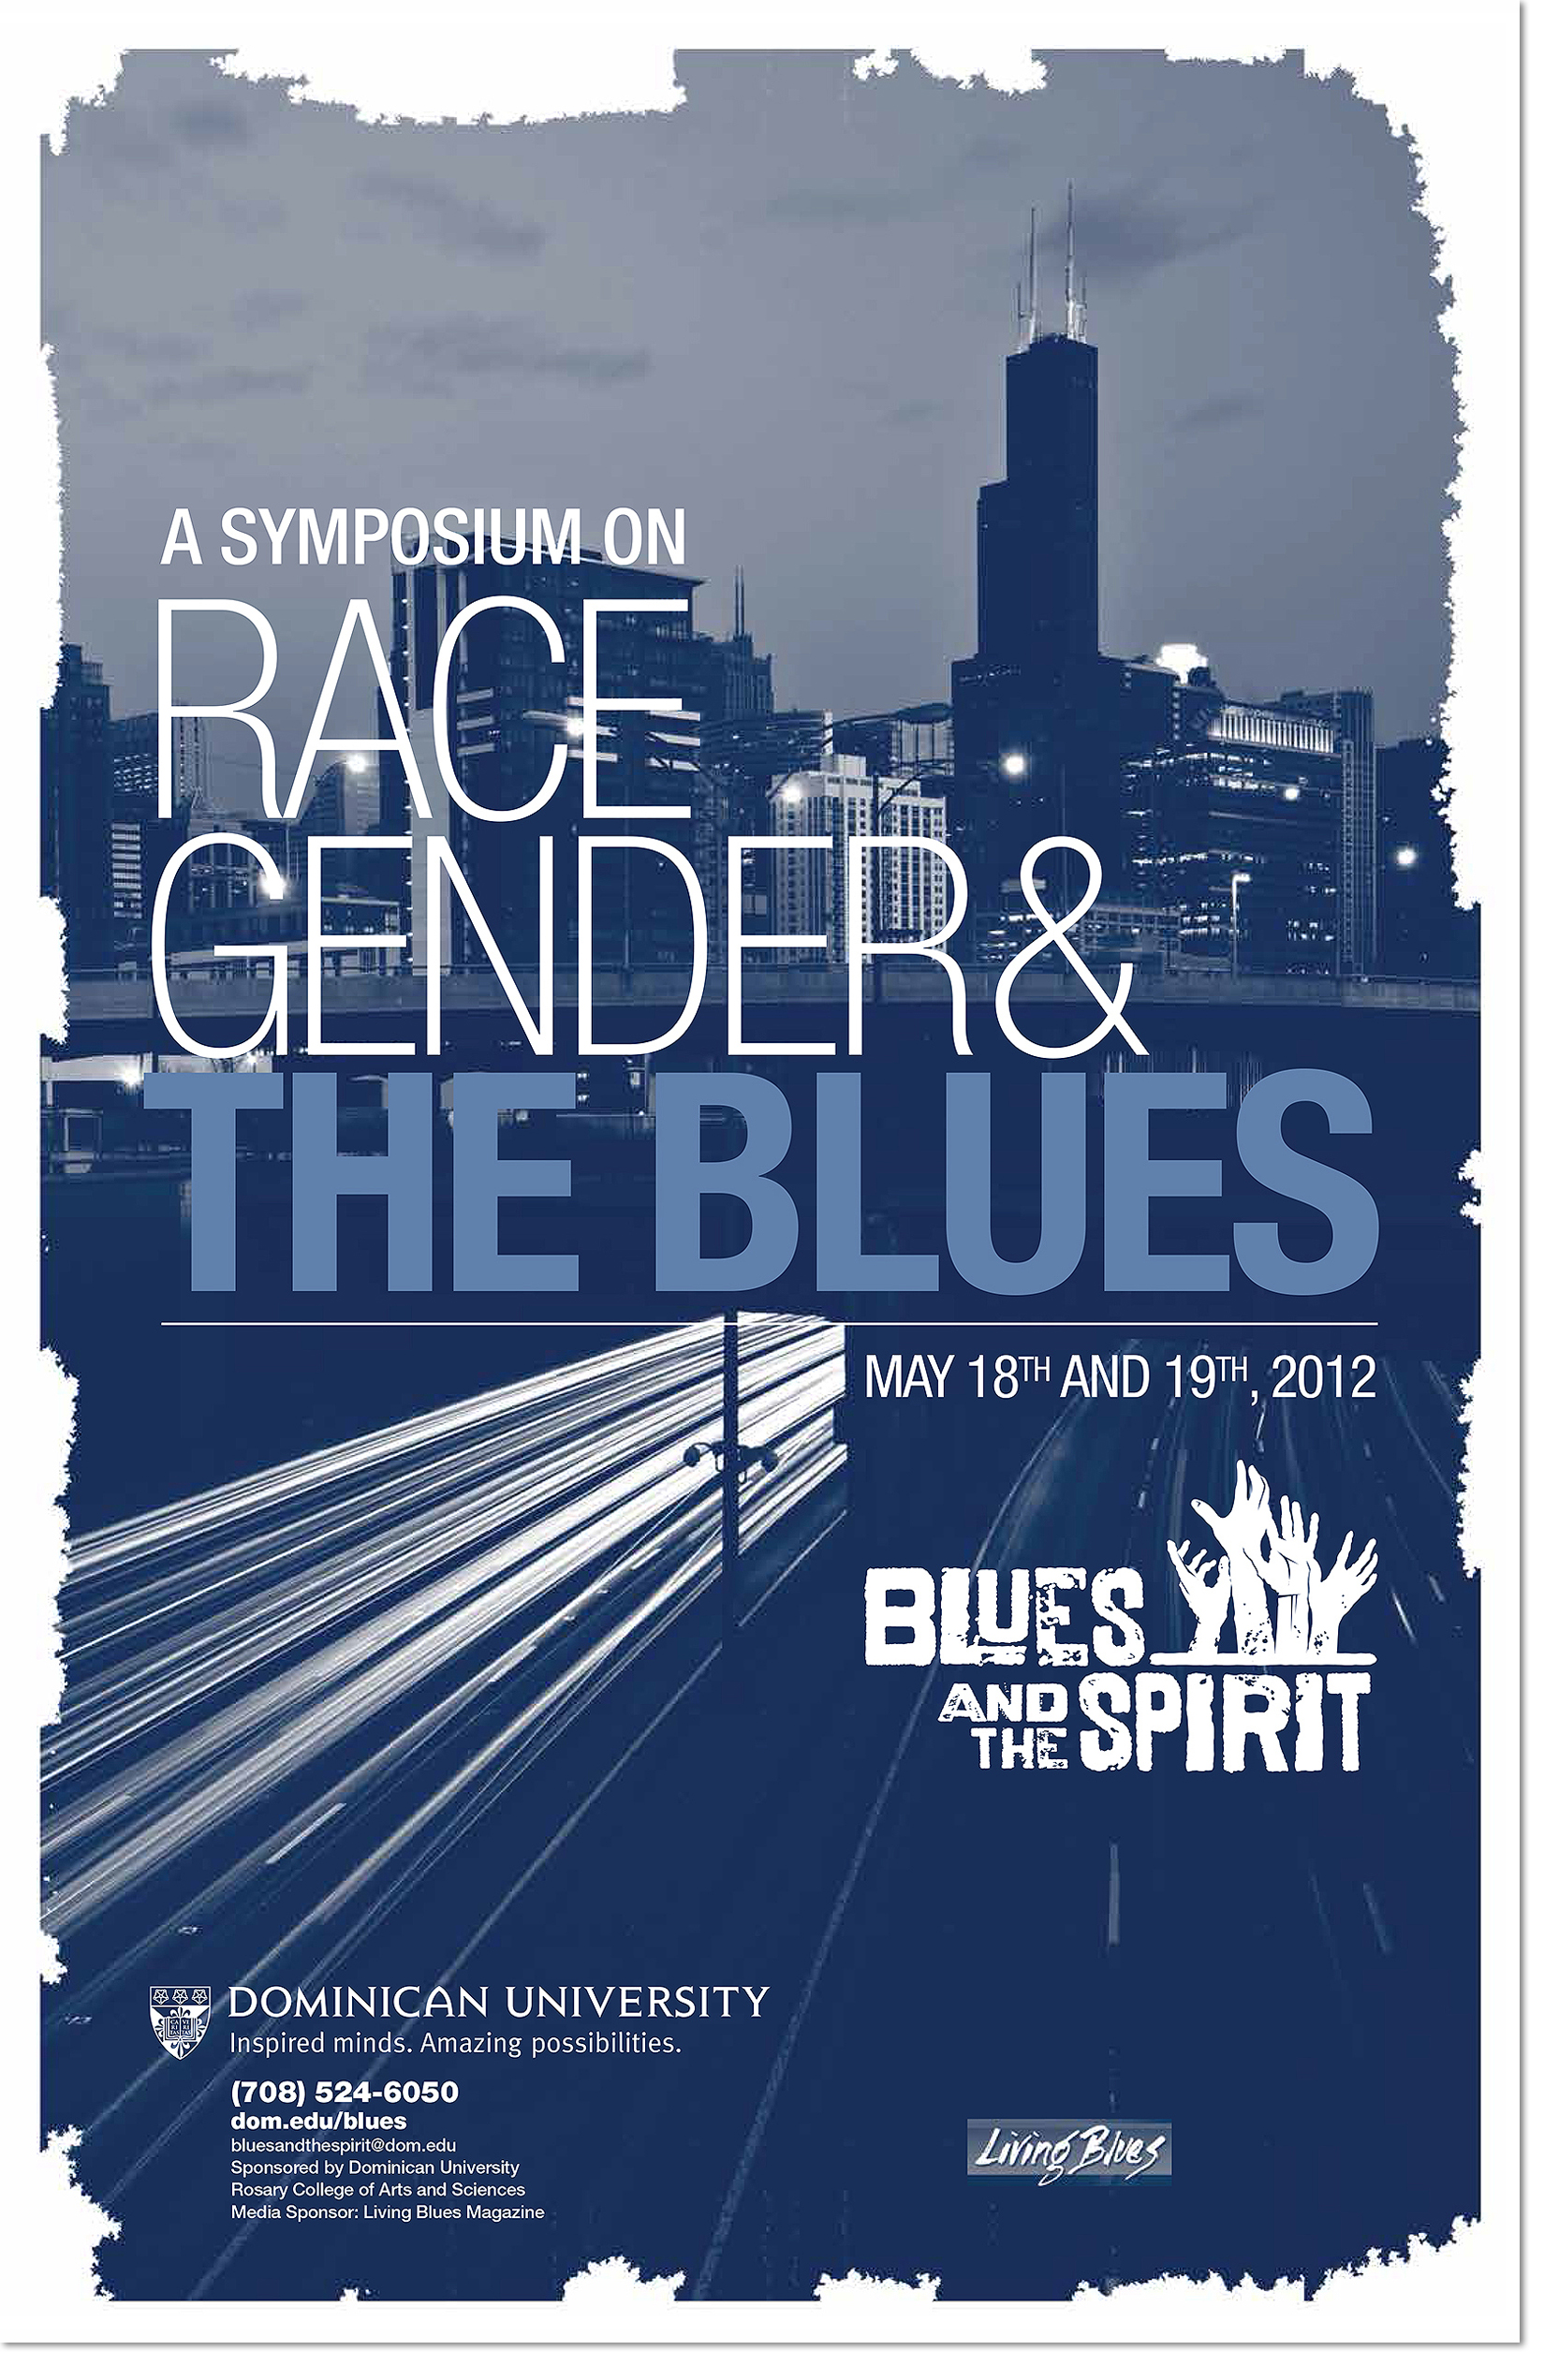 blues_spirit_poster_5-16-13-1.jpg